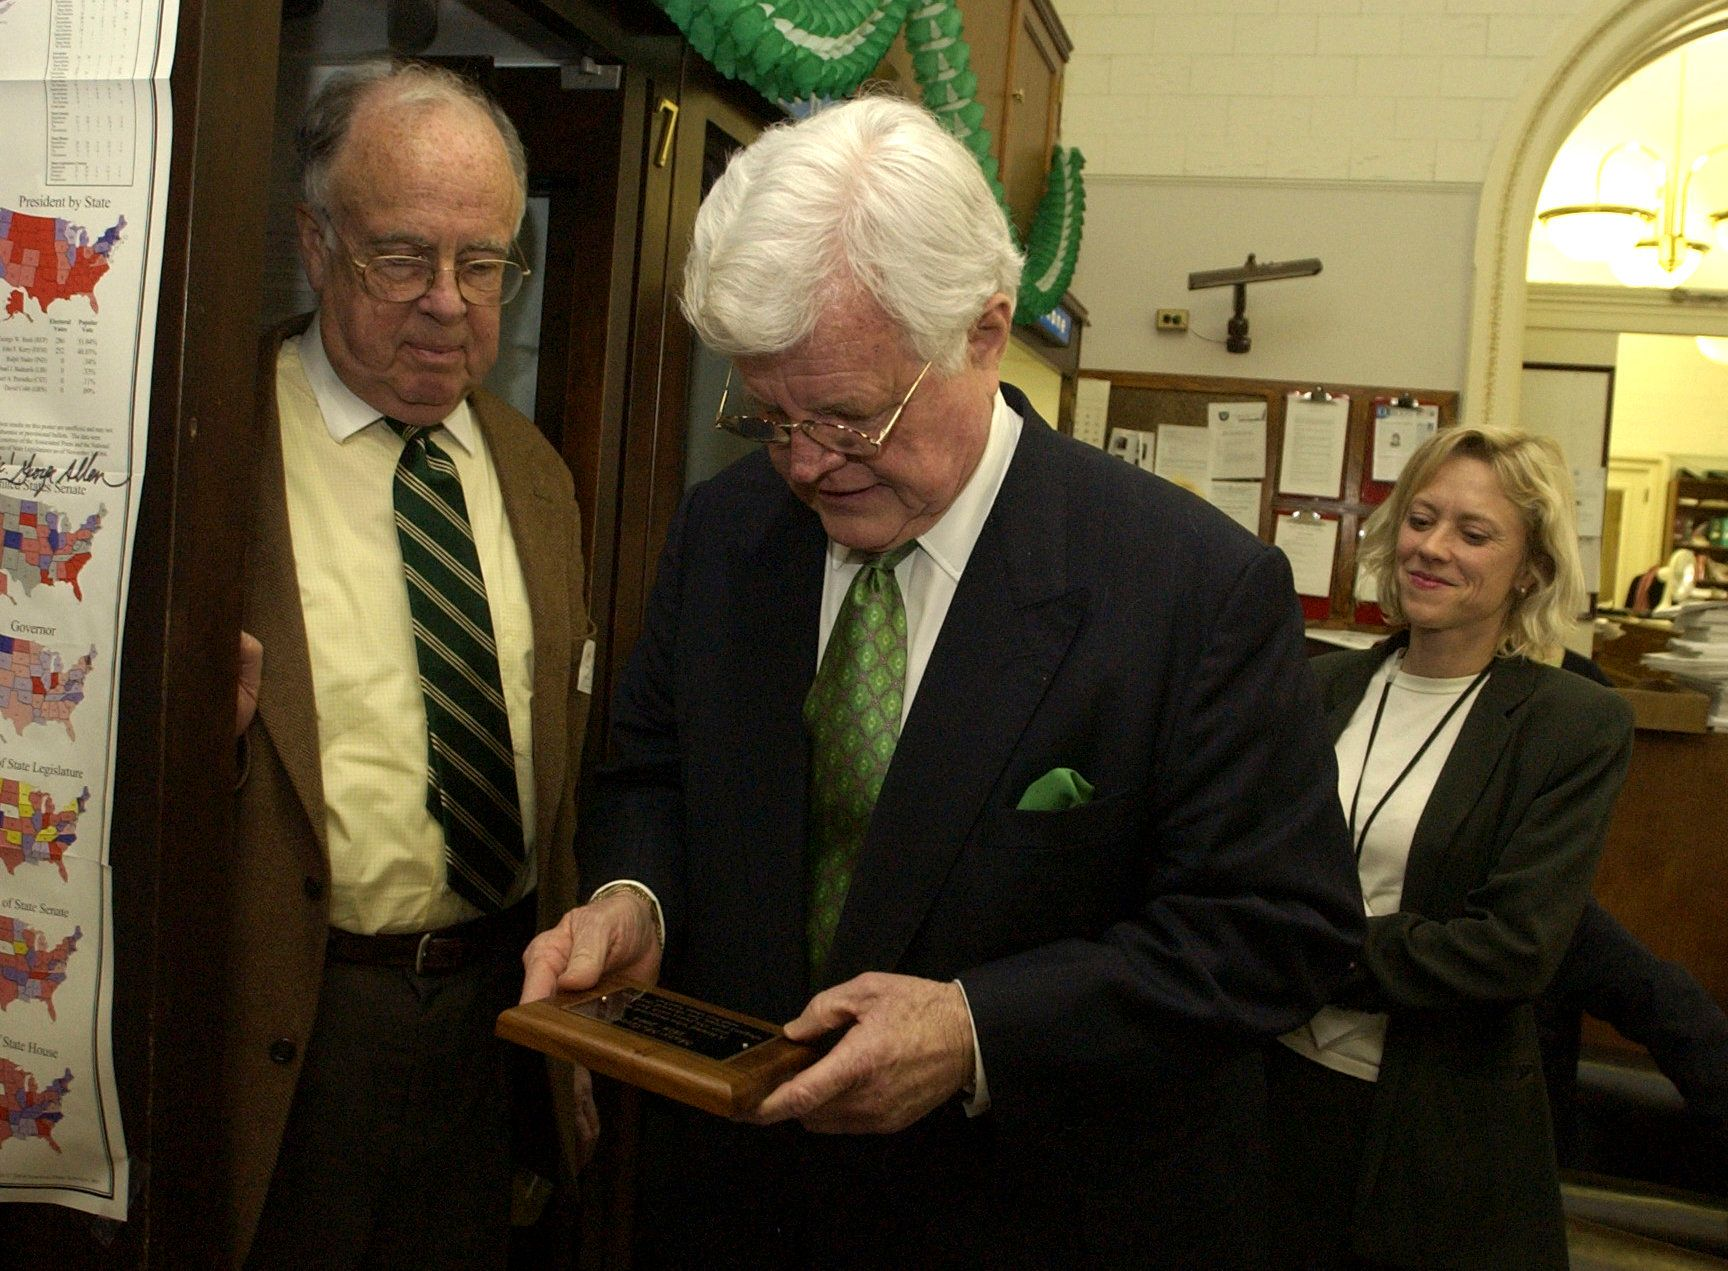 UNITED STATES - MARCH 17:  Sen. Ted Kennedy, D-Mass., inspects a plaque that was dedicated to the late Mary McGrory and was hung in the Senate Press Gallery. Adam Clymer, former New York Times reporter, appears at left, and Judy Holland of Hearst, at right.  (Photo By Tom Williams/Roll Call/Getty Images)